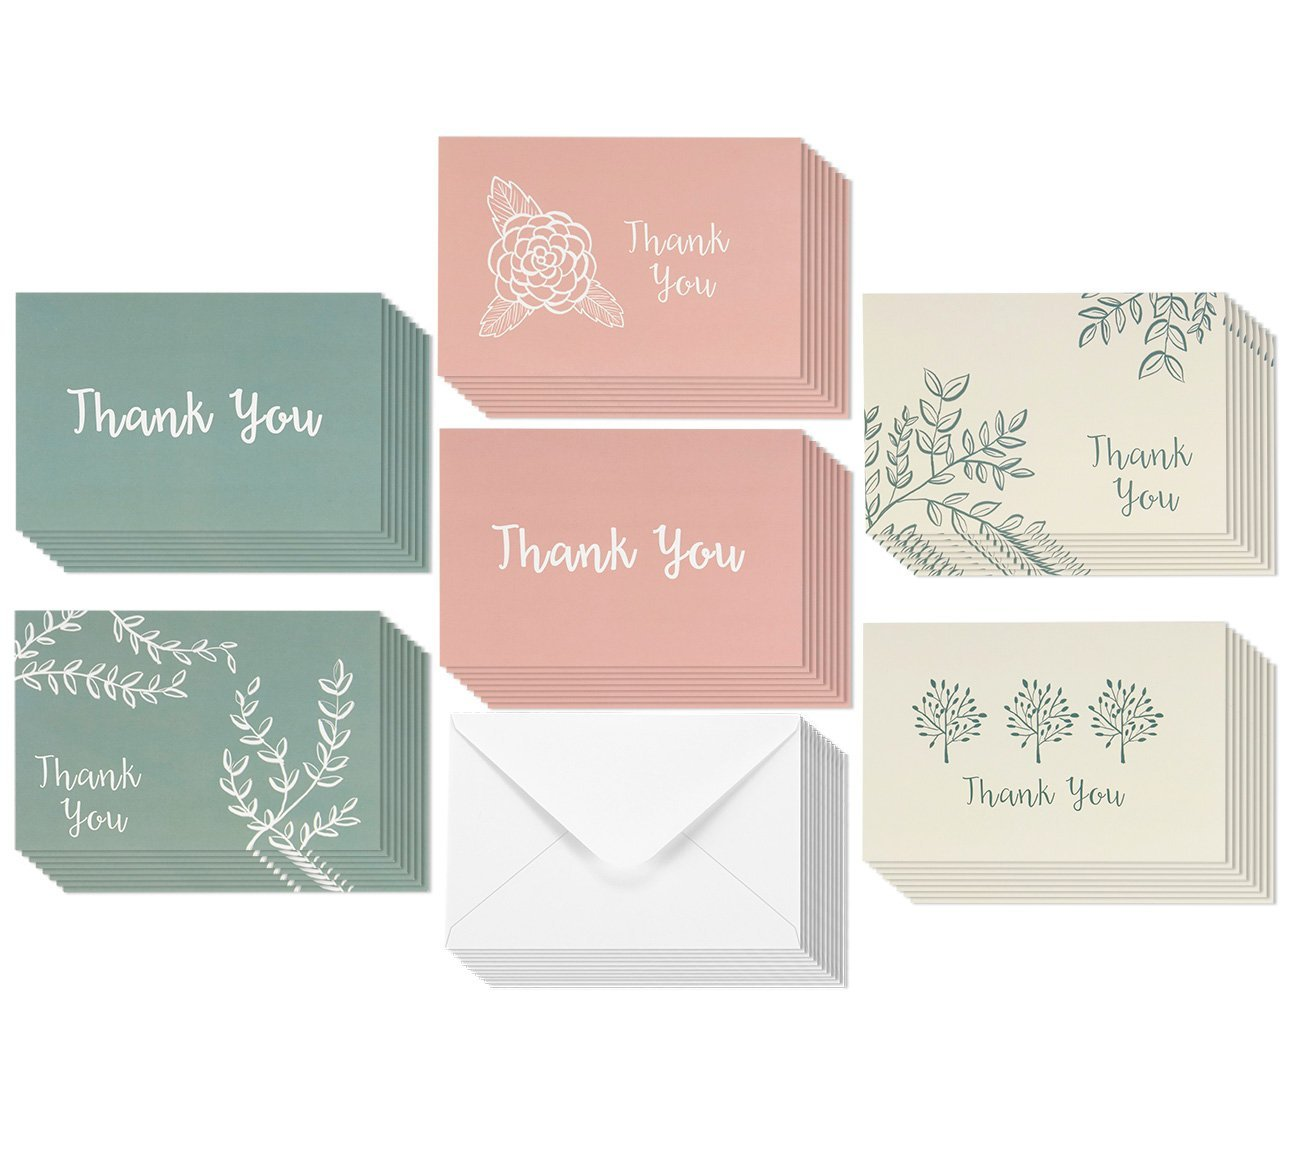 Cheap bulk greeting cards cheap find bulk greeting cards cheap 48 pack thank you greeting cards bulk floral and foliage designs thank you note m4hsunfo